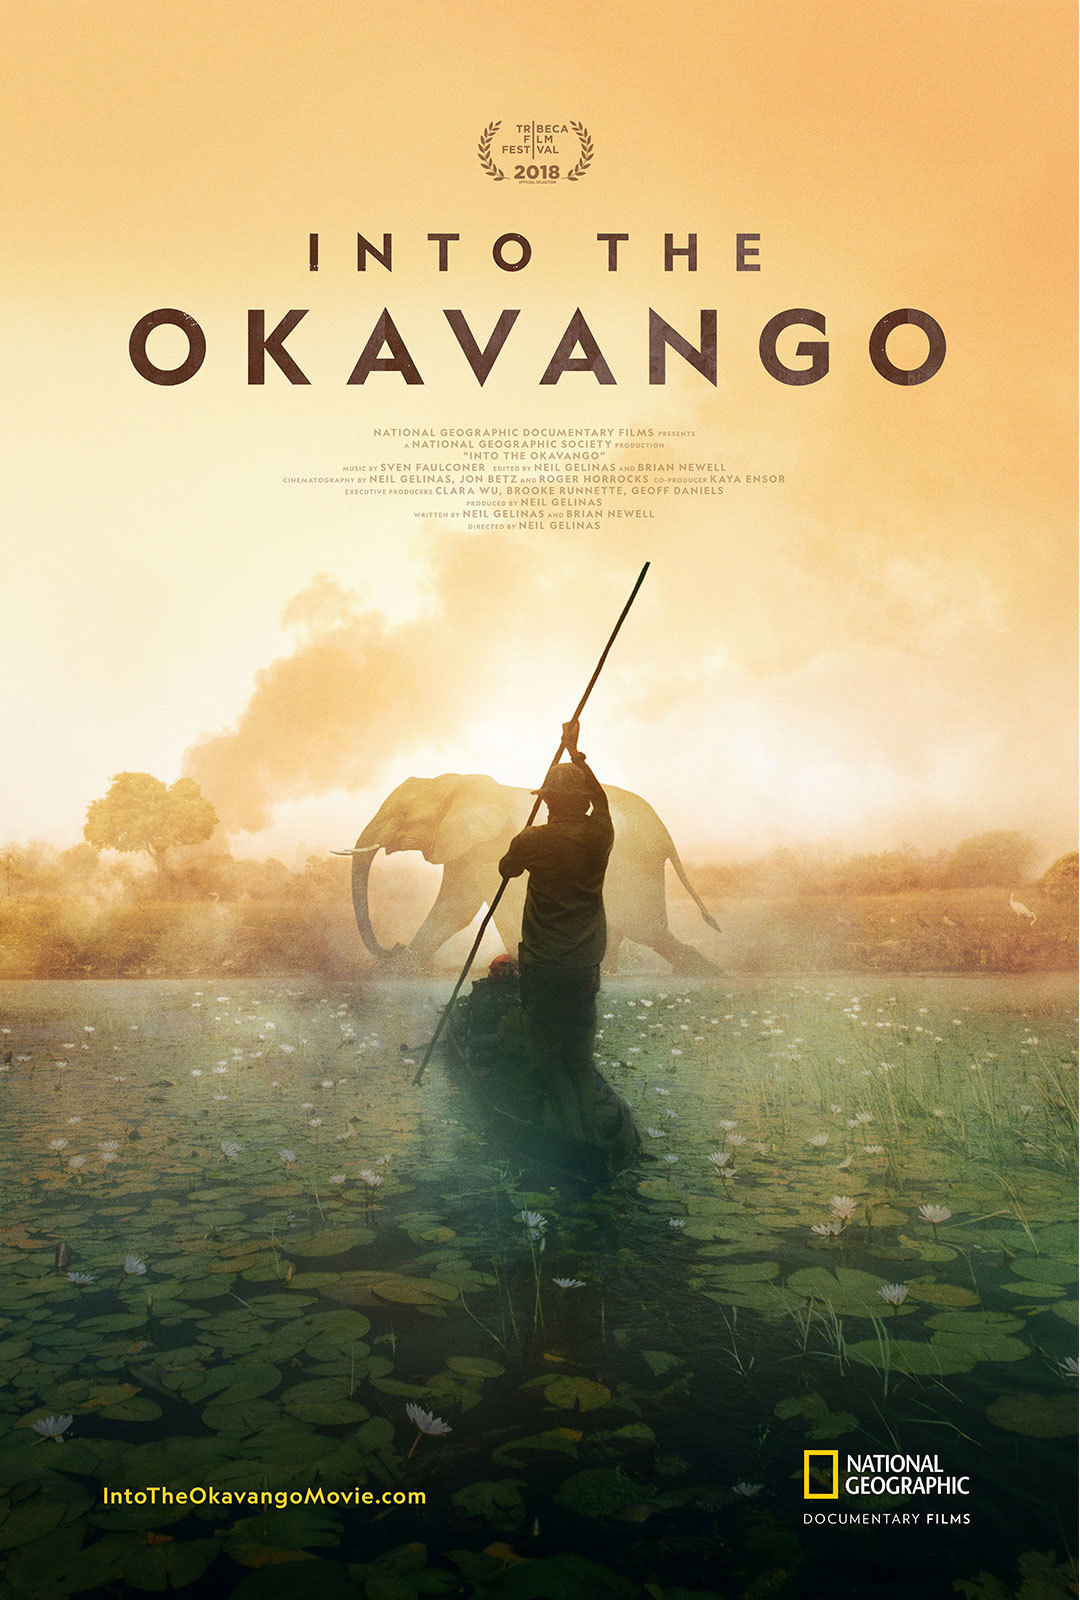 Into the Okavango movie poster